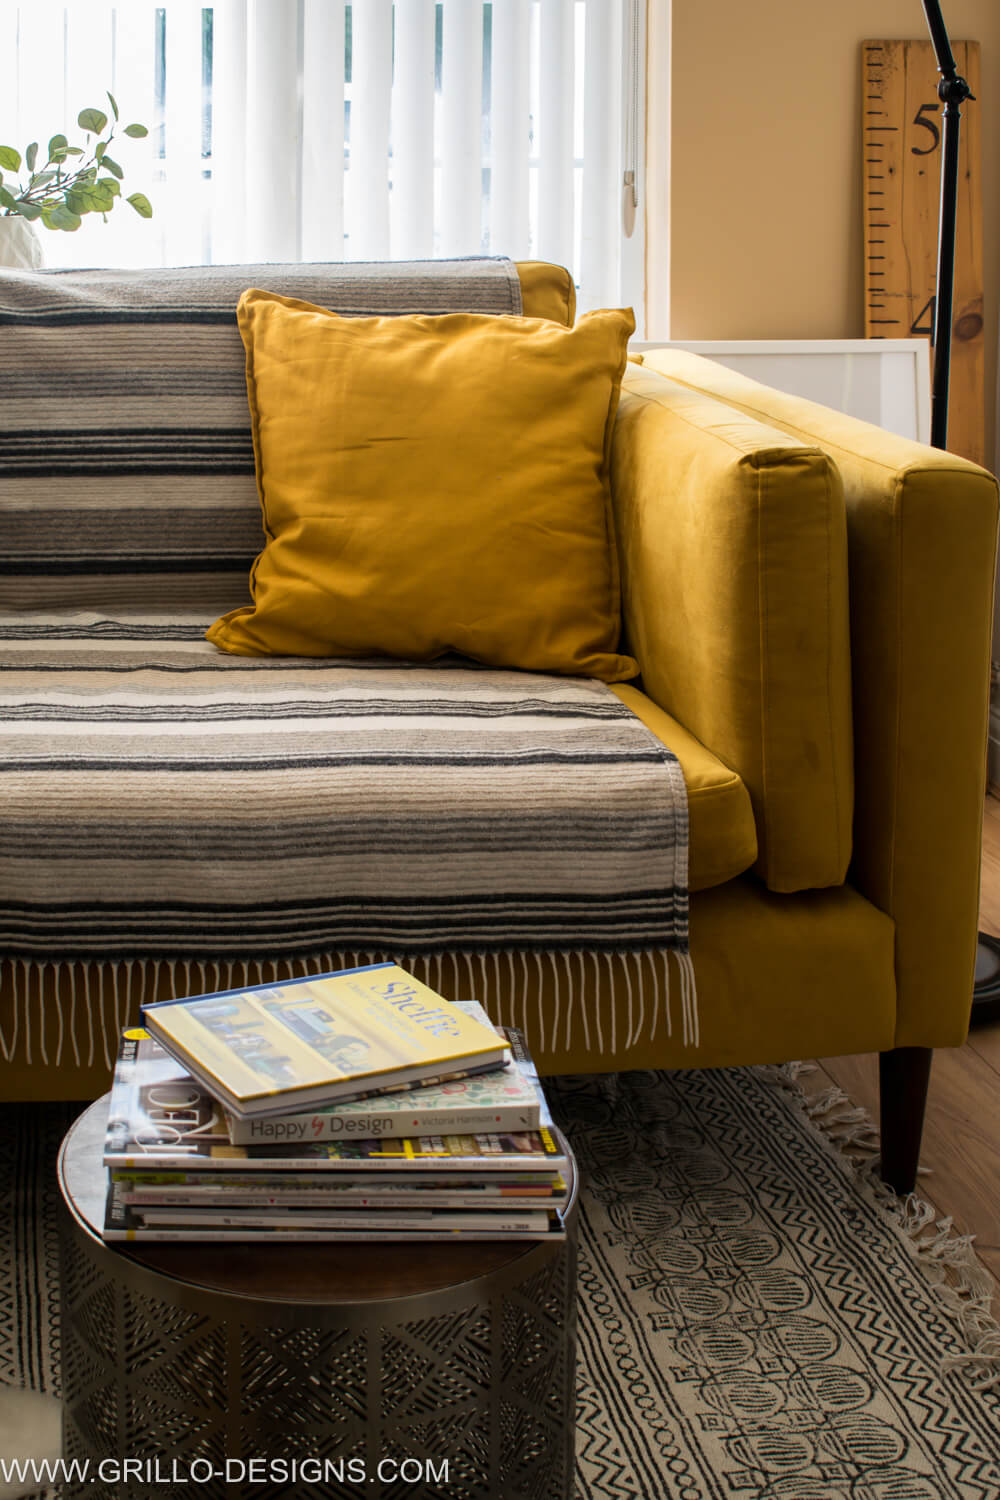 Use throws and blankets to cover velvet sofa / grillo designs